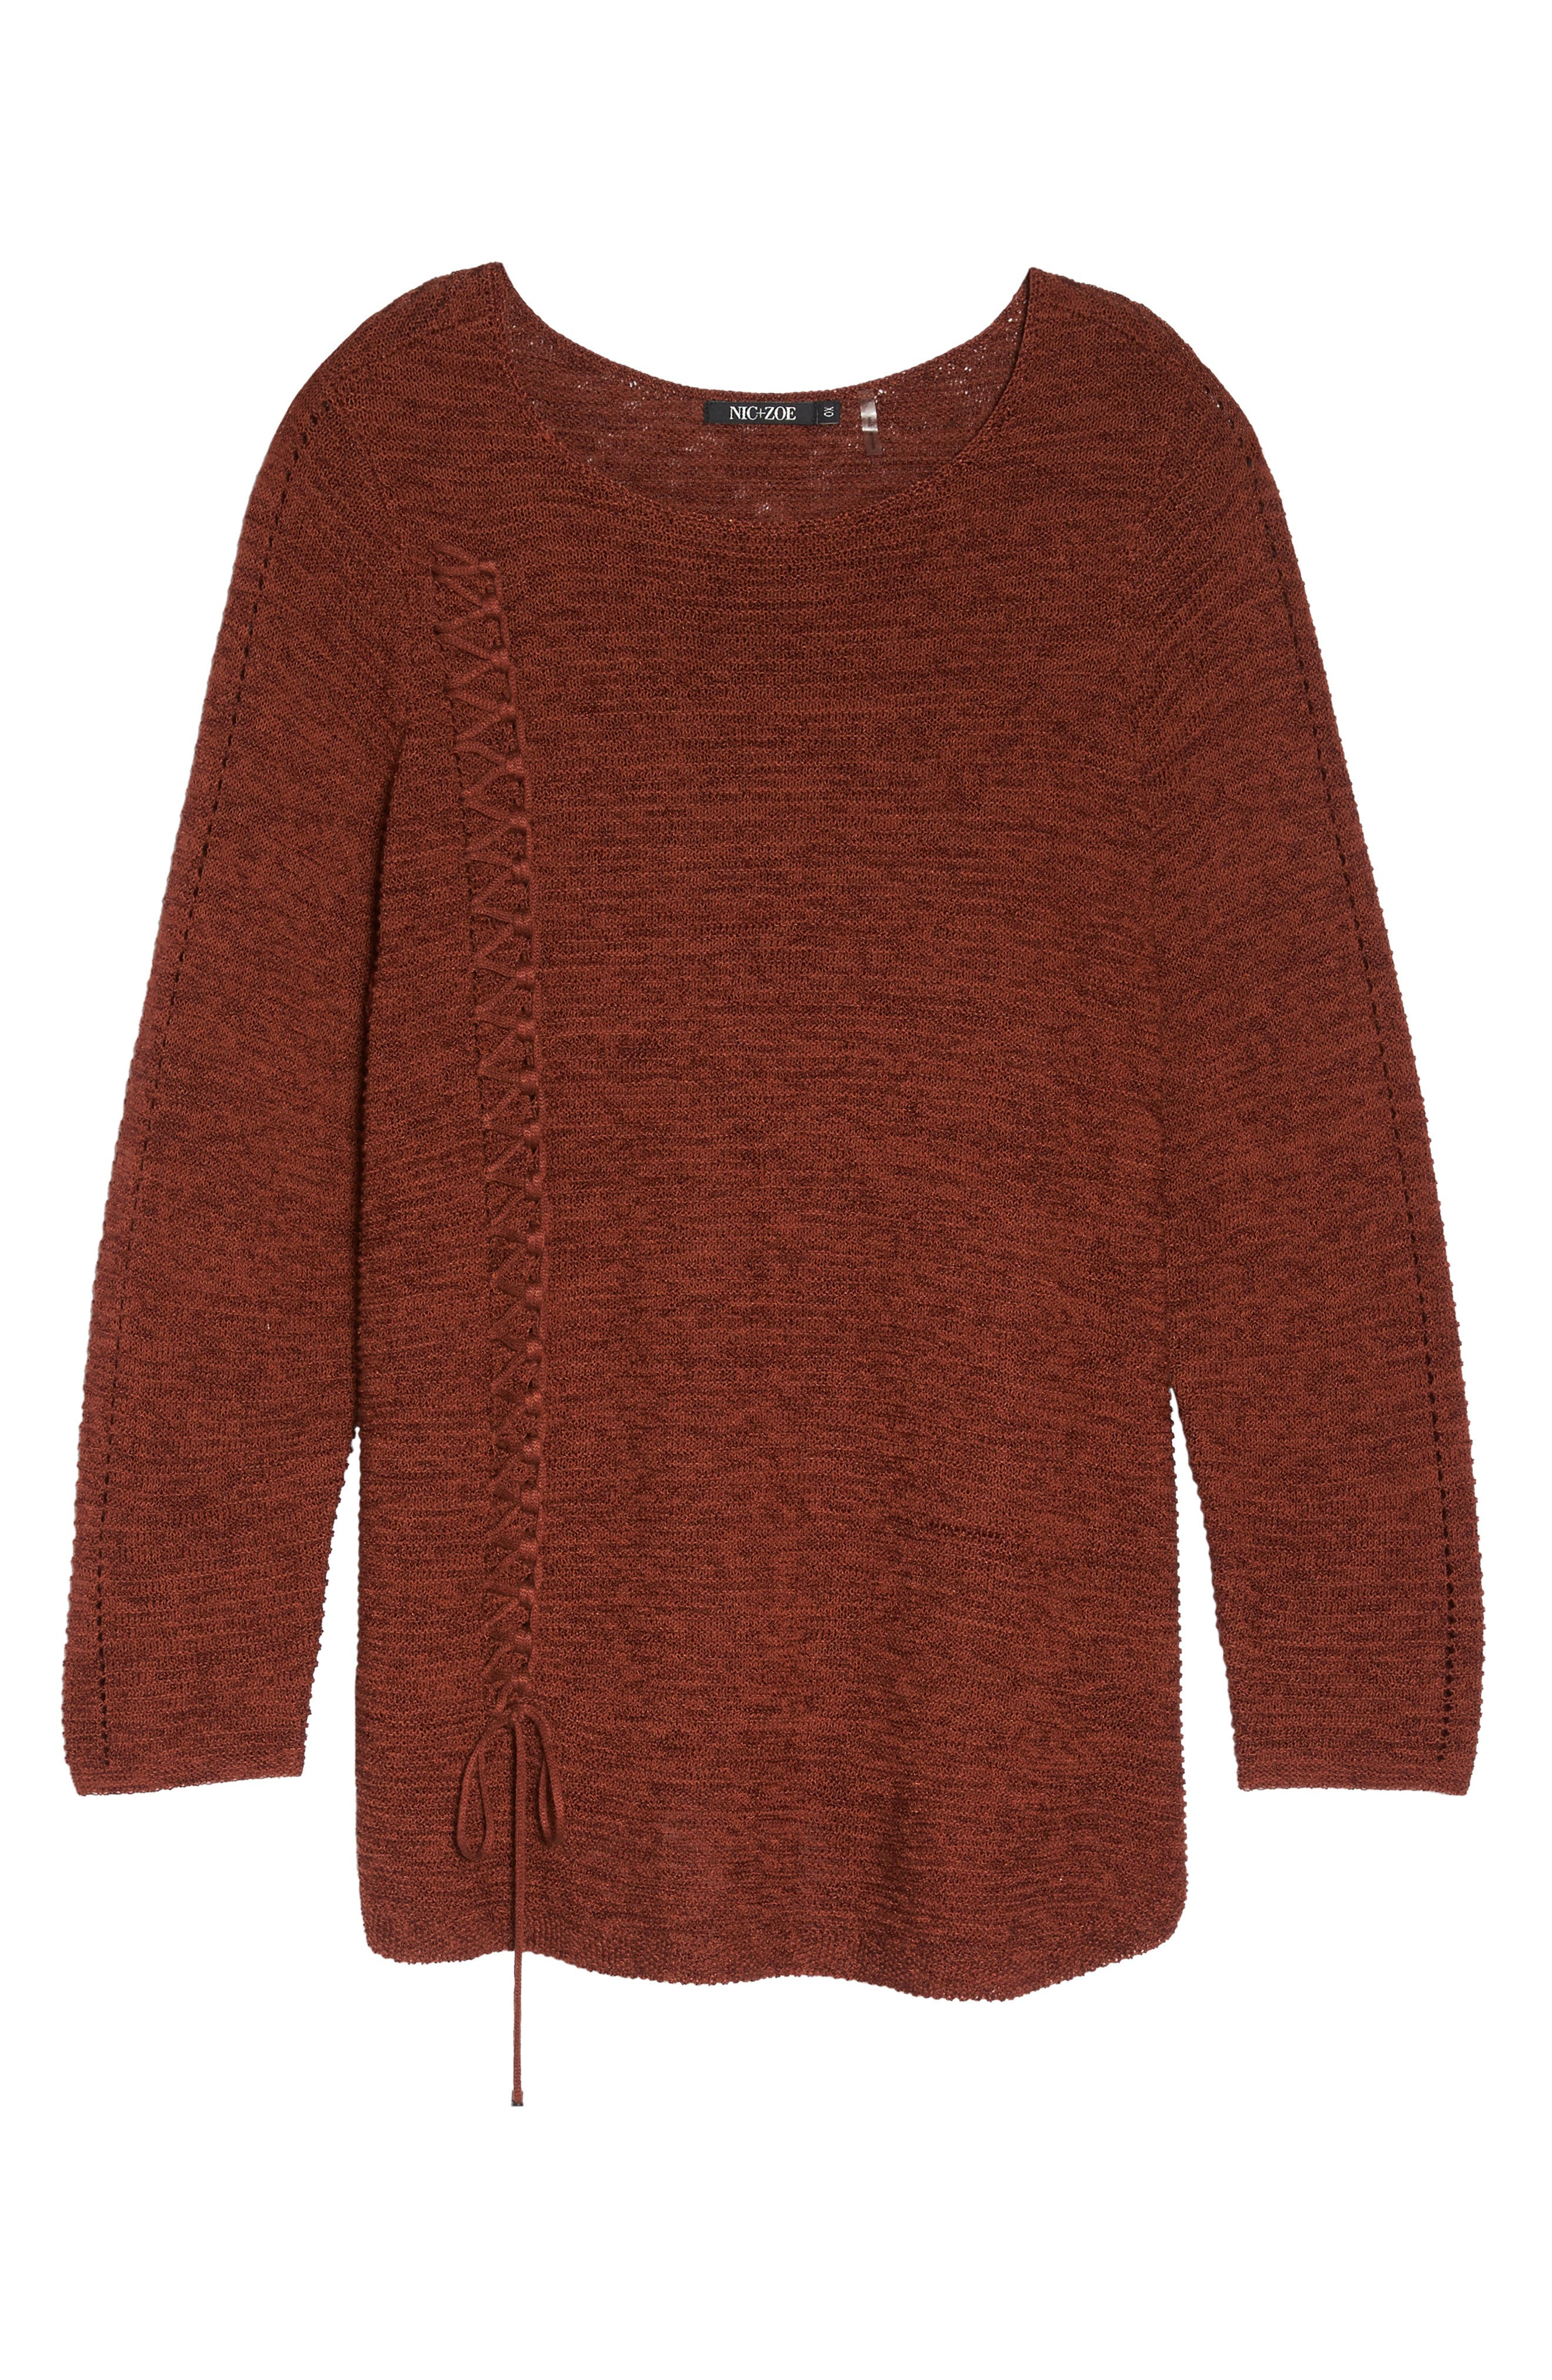 Braided Up Sweater,                             Alternate thumbnail 6, color,                             BRANDY